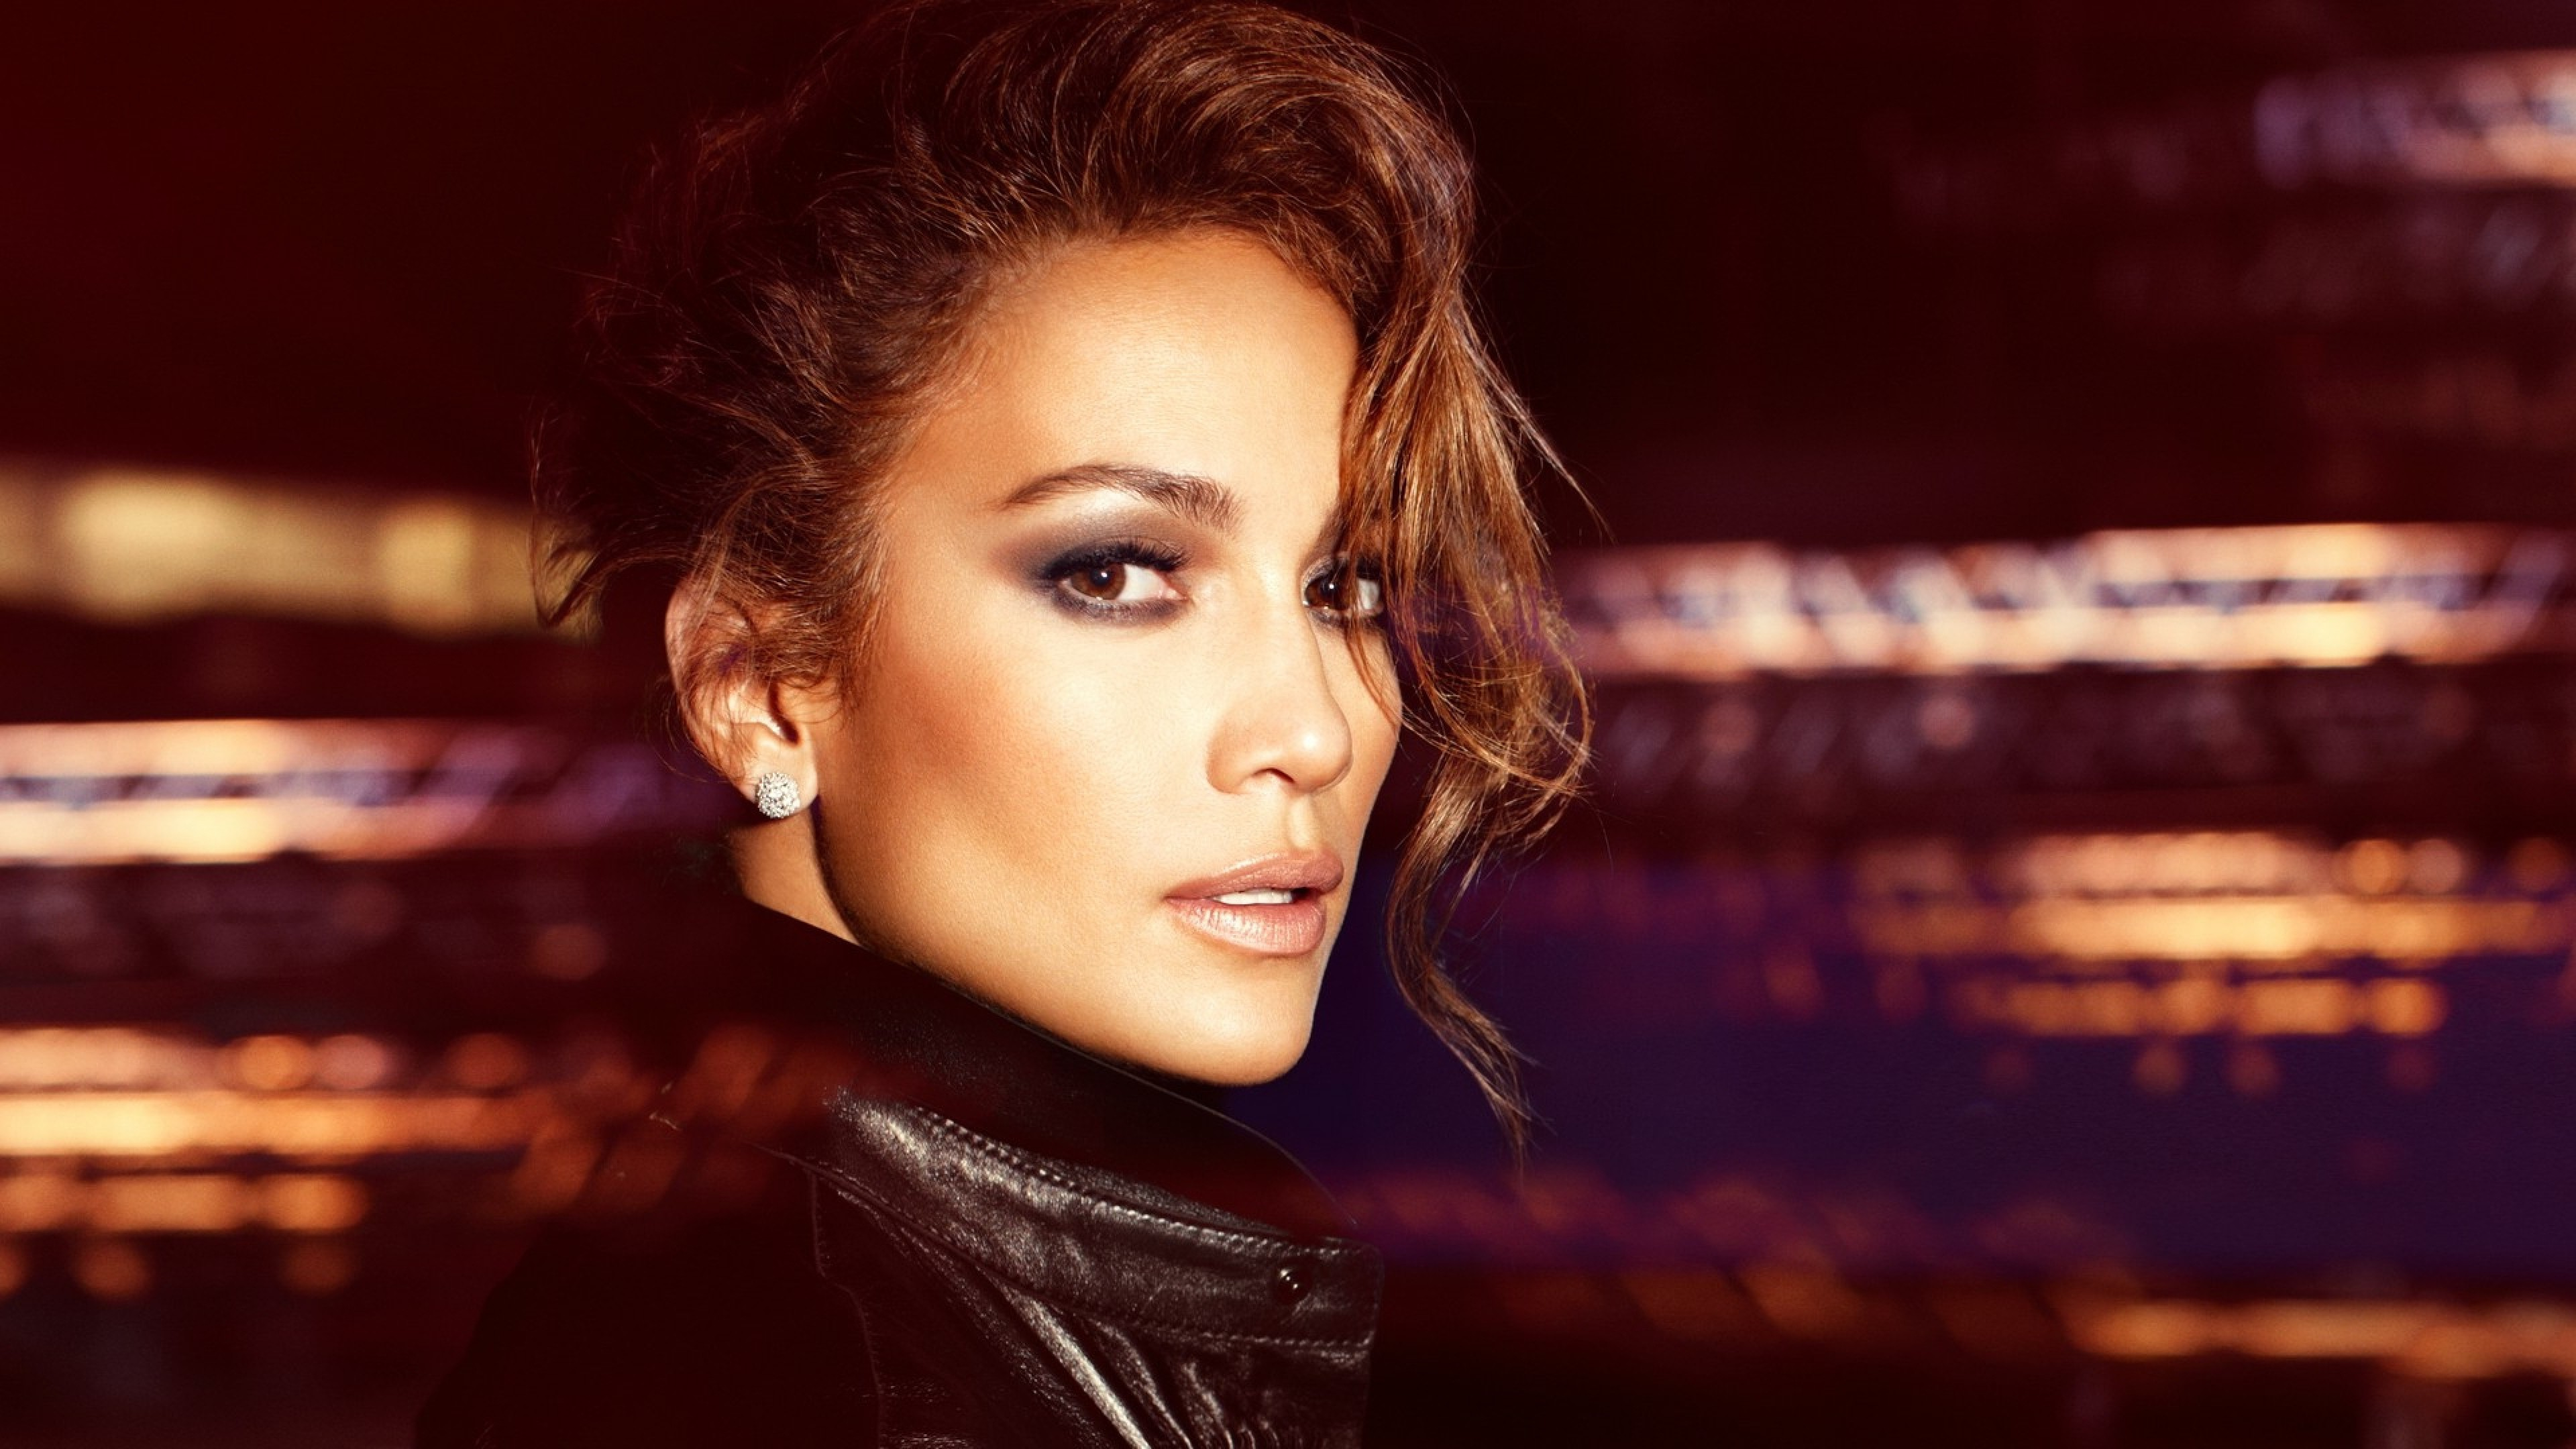 jennifer lopez 2 1536855785 - Jennifer Lopez 2 - jennifier lopez wallpapers, girls wallpapers, celebrities wallpapers